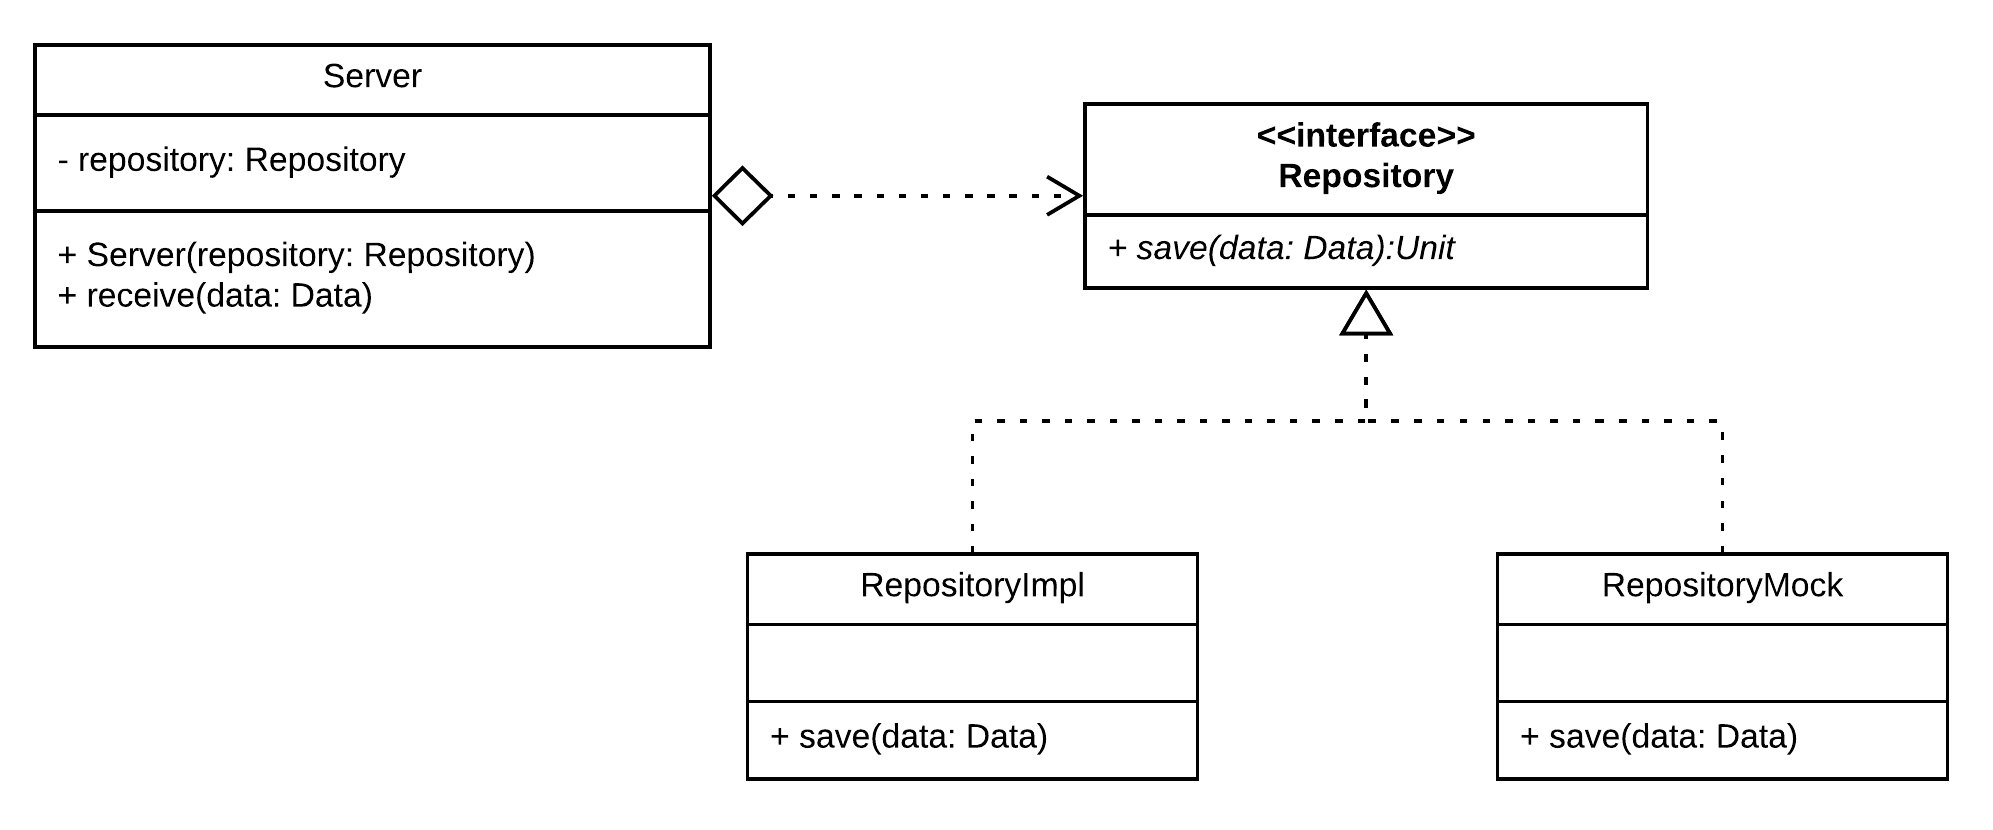 Figure 1.13 - Loosely Coupled